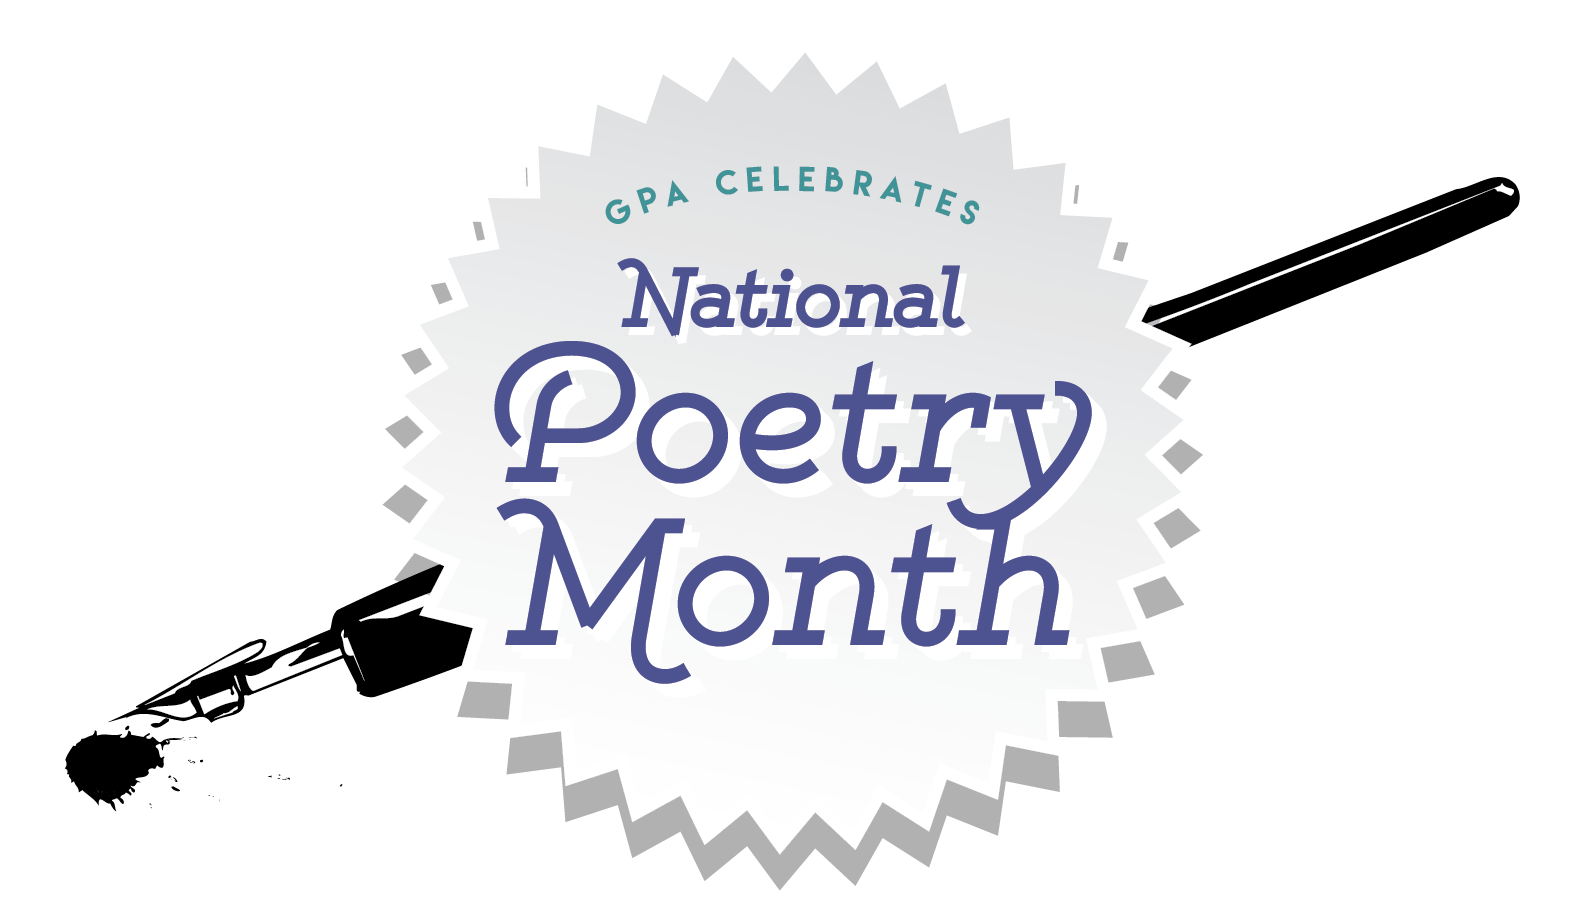 GPA Celebrates National Poetry Month